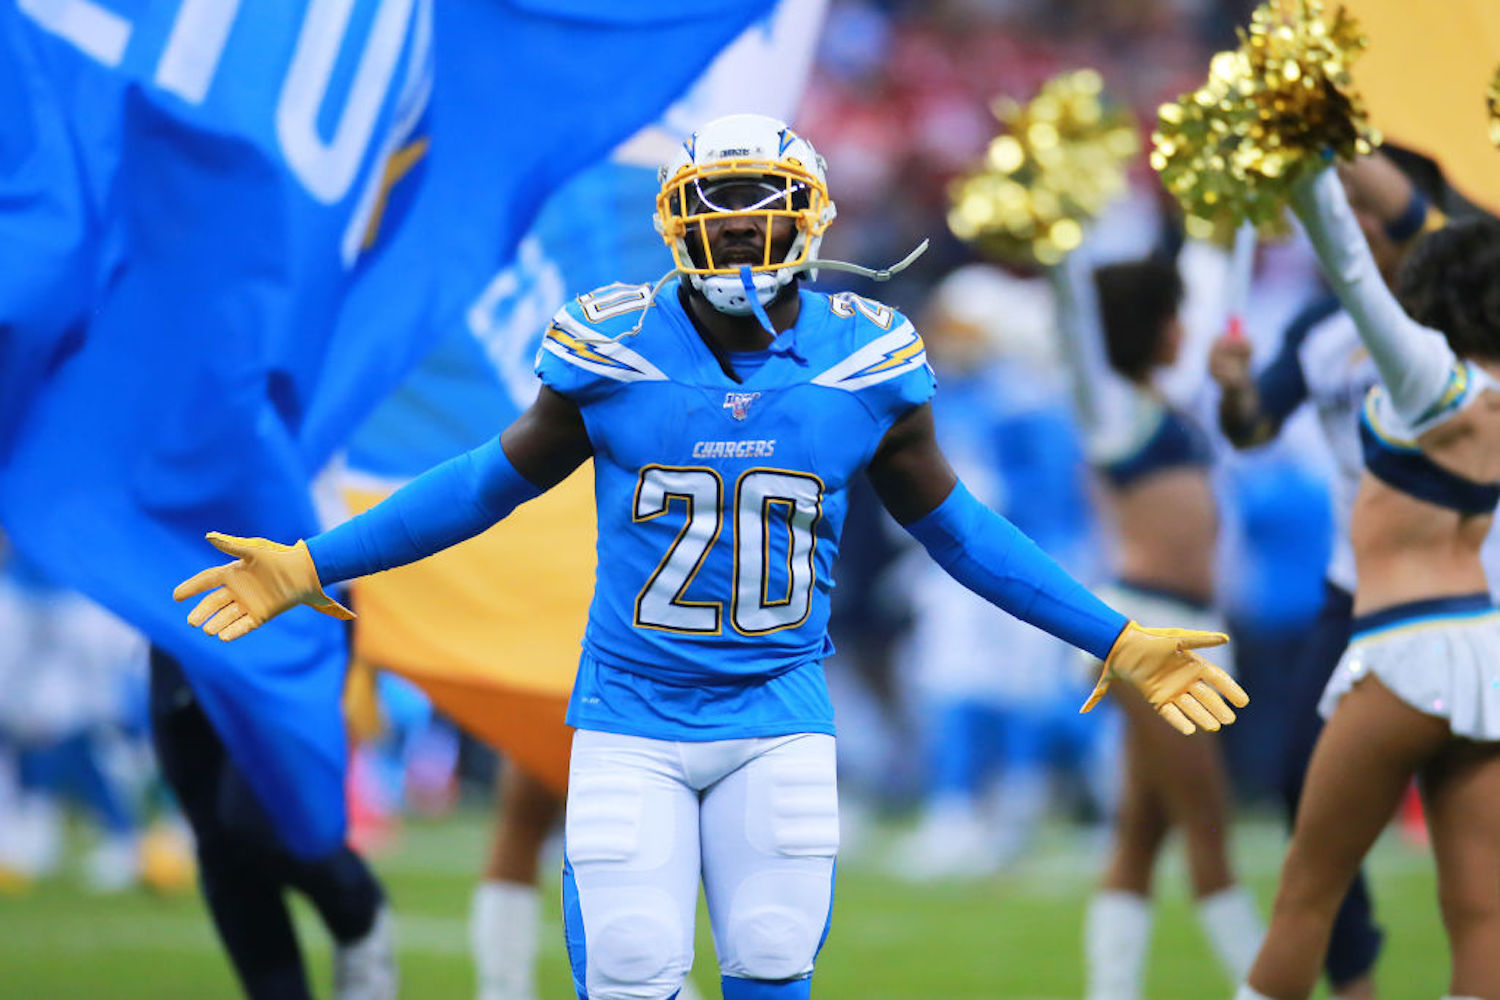 Desmond King was named an All-Pro just two years ago, but the LA Chargers just dealt him to the Tennessee Titans ahead of the trade deadline.